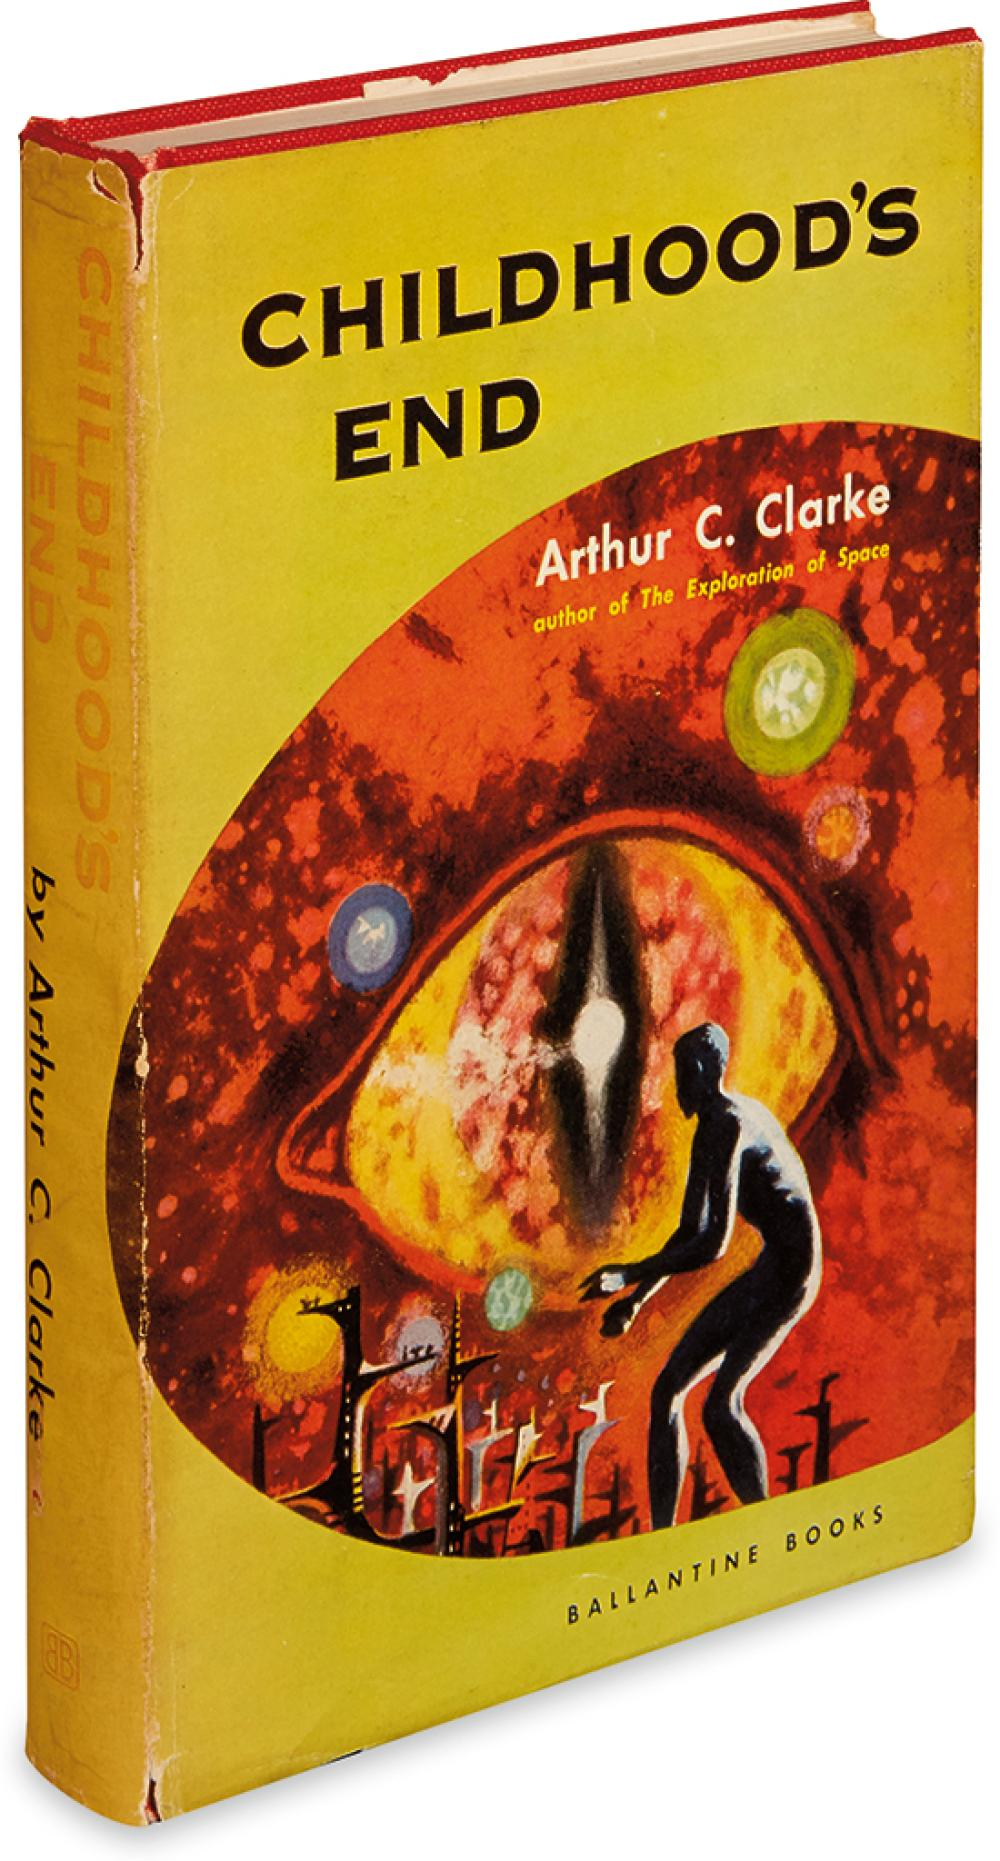 CLARKE, ARTHUR C. Childhood's End.